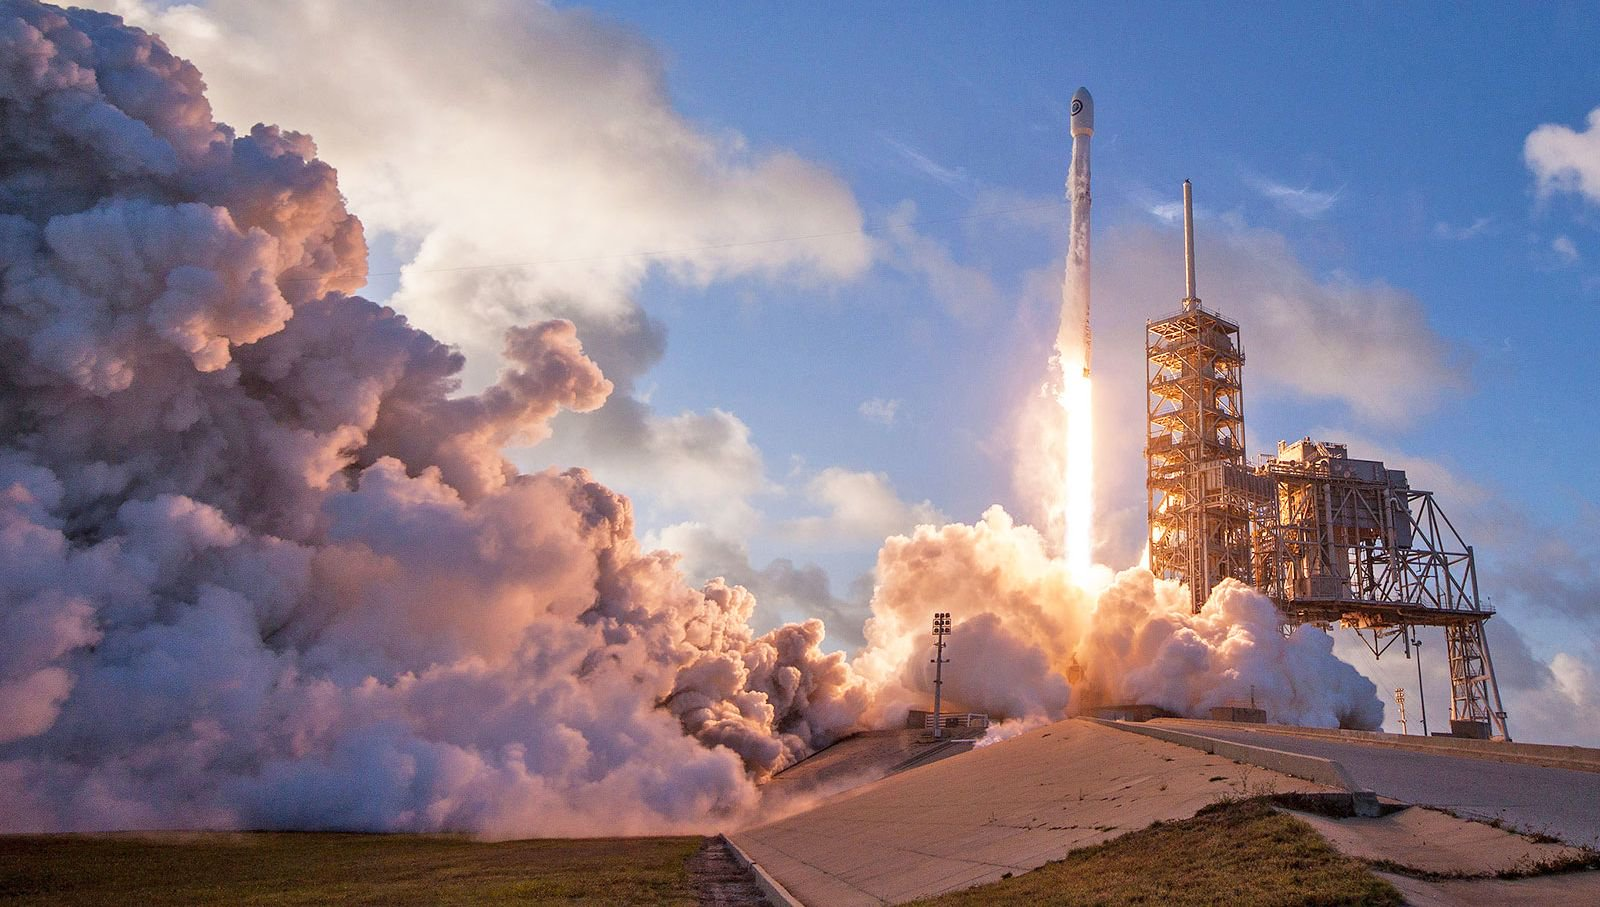 On the weekend, SpaceX will orbit two communications satellites